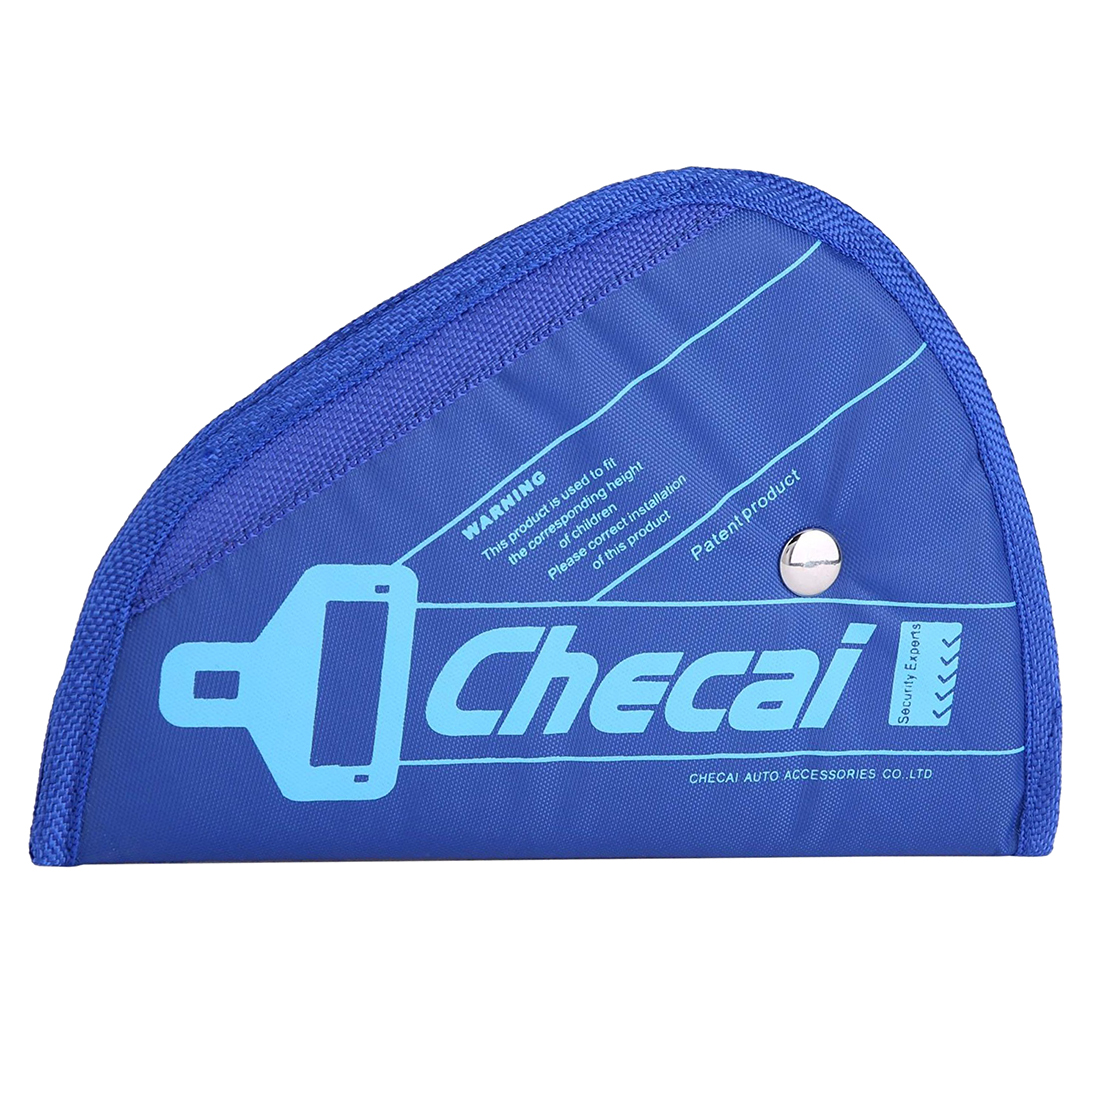 CHECAI Child Kids Baby Adjustment Auto Car Belt Adjuster Safety Seat Belt Positioner Blue